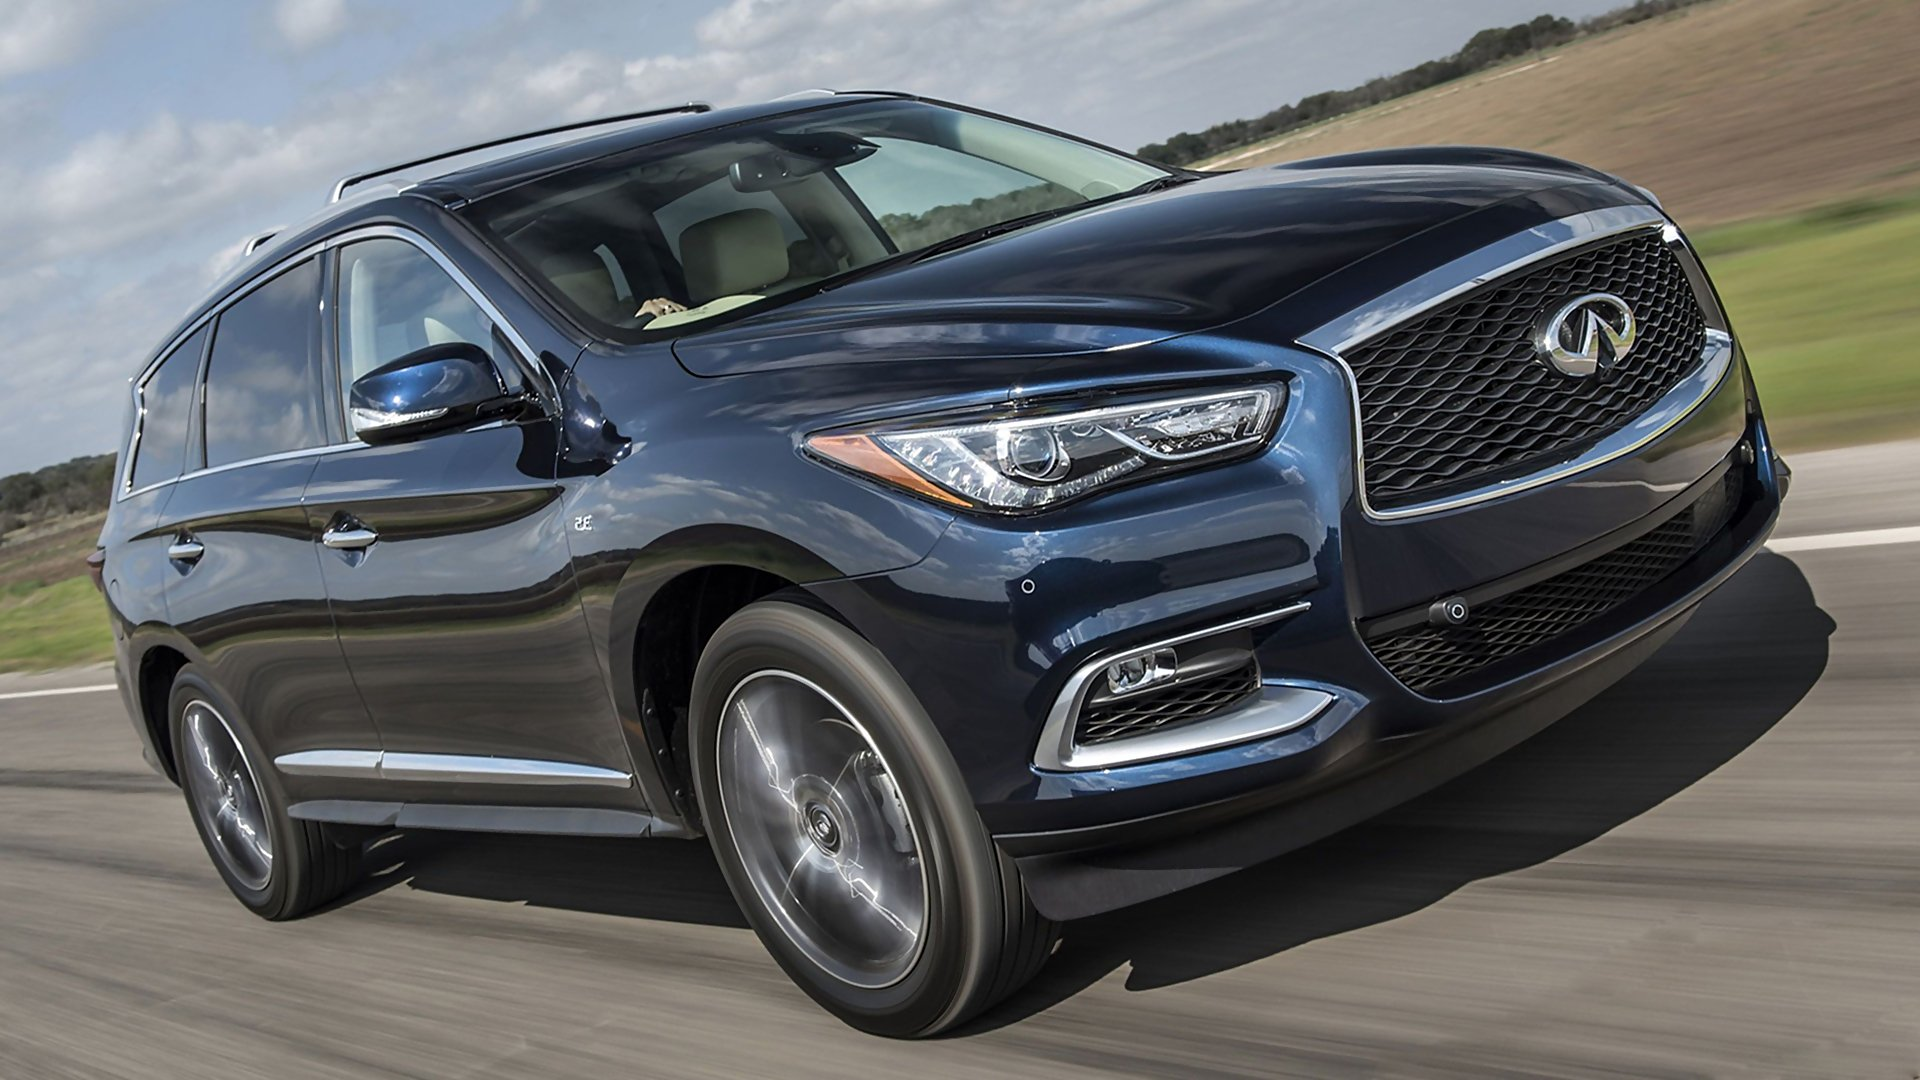 New 2019 Infiniti QX60 Review